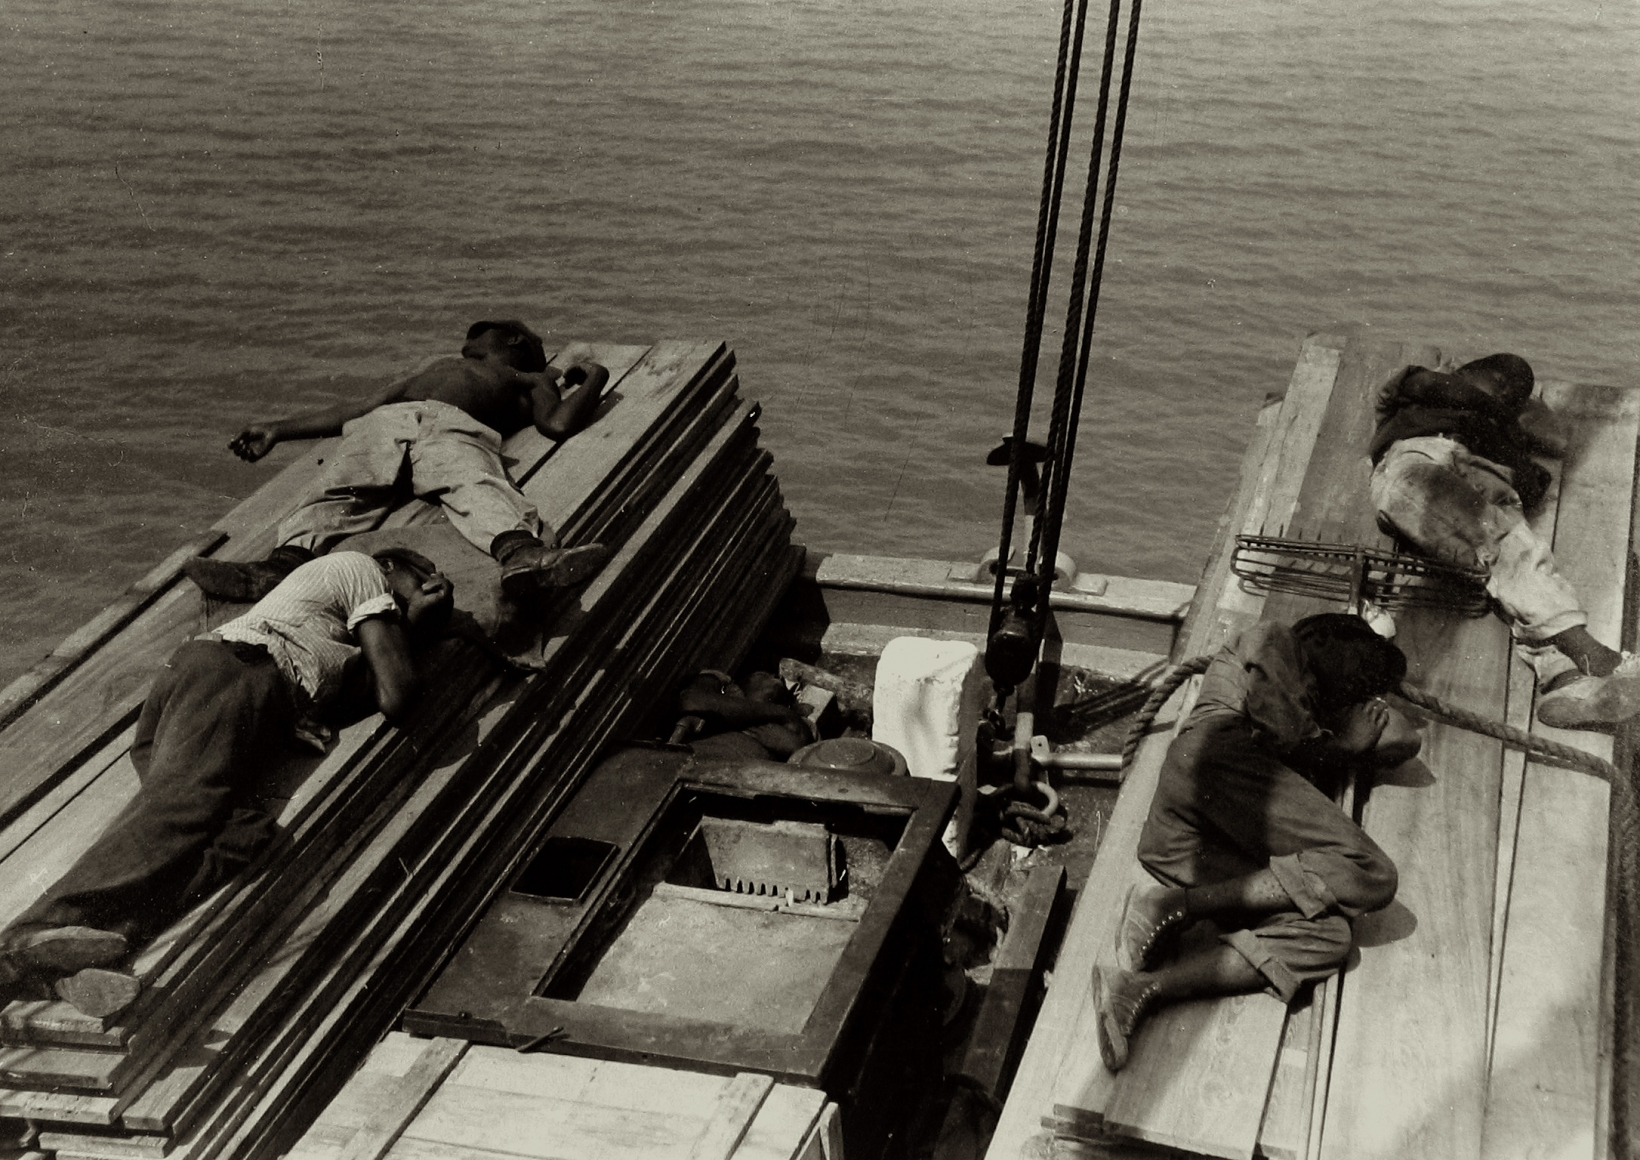 Russell Lee  Untitled (men lying on stacks of wooden planks on boat), c.1937 Gelatin silver print; printed c.1937 9 1/2 x 13 1/2 inches, Howard Greenberg Gallery, 2020